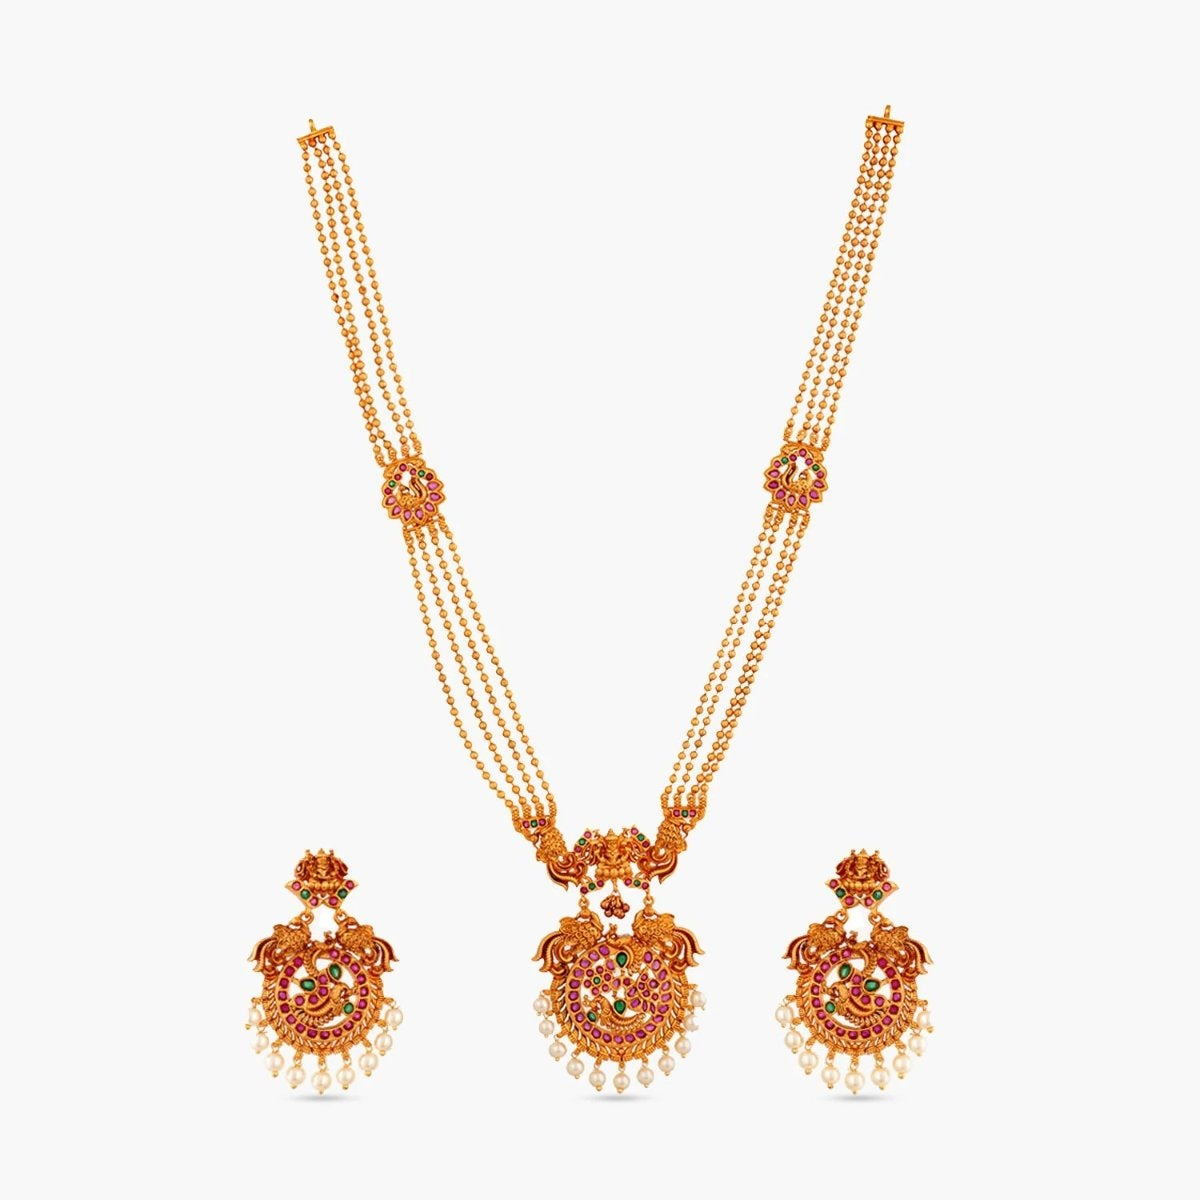 Anya Long Necklace Set